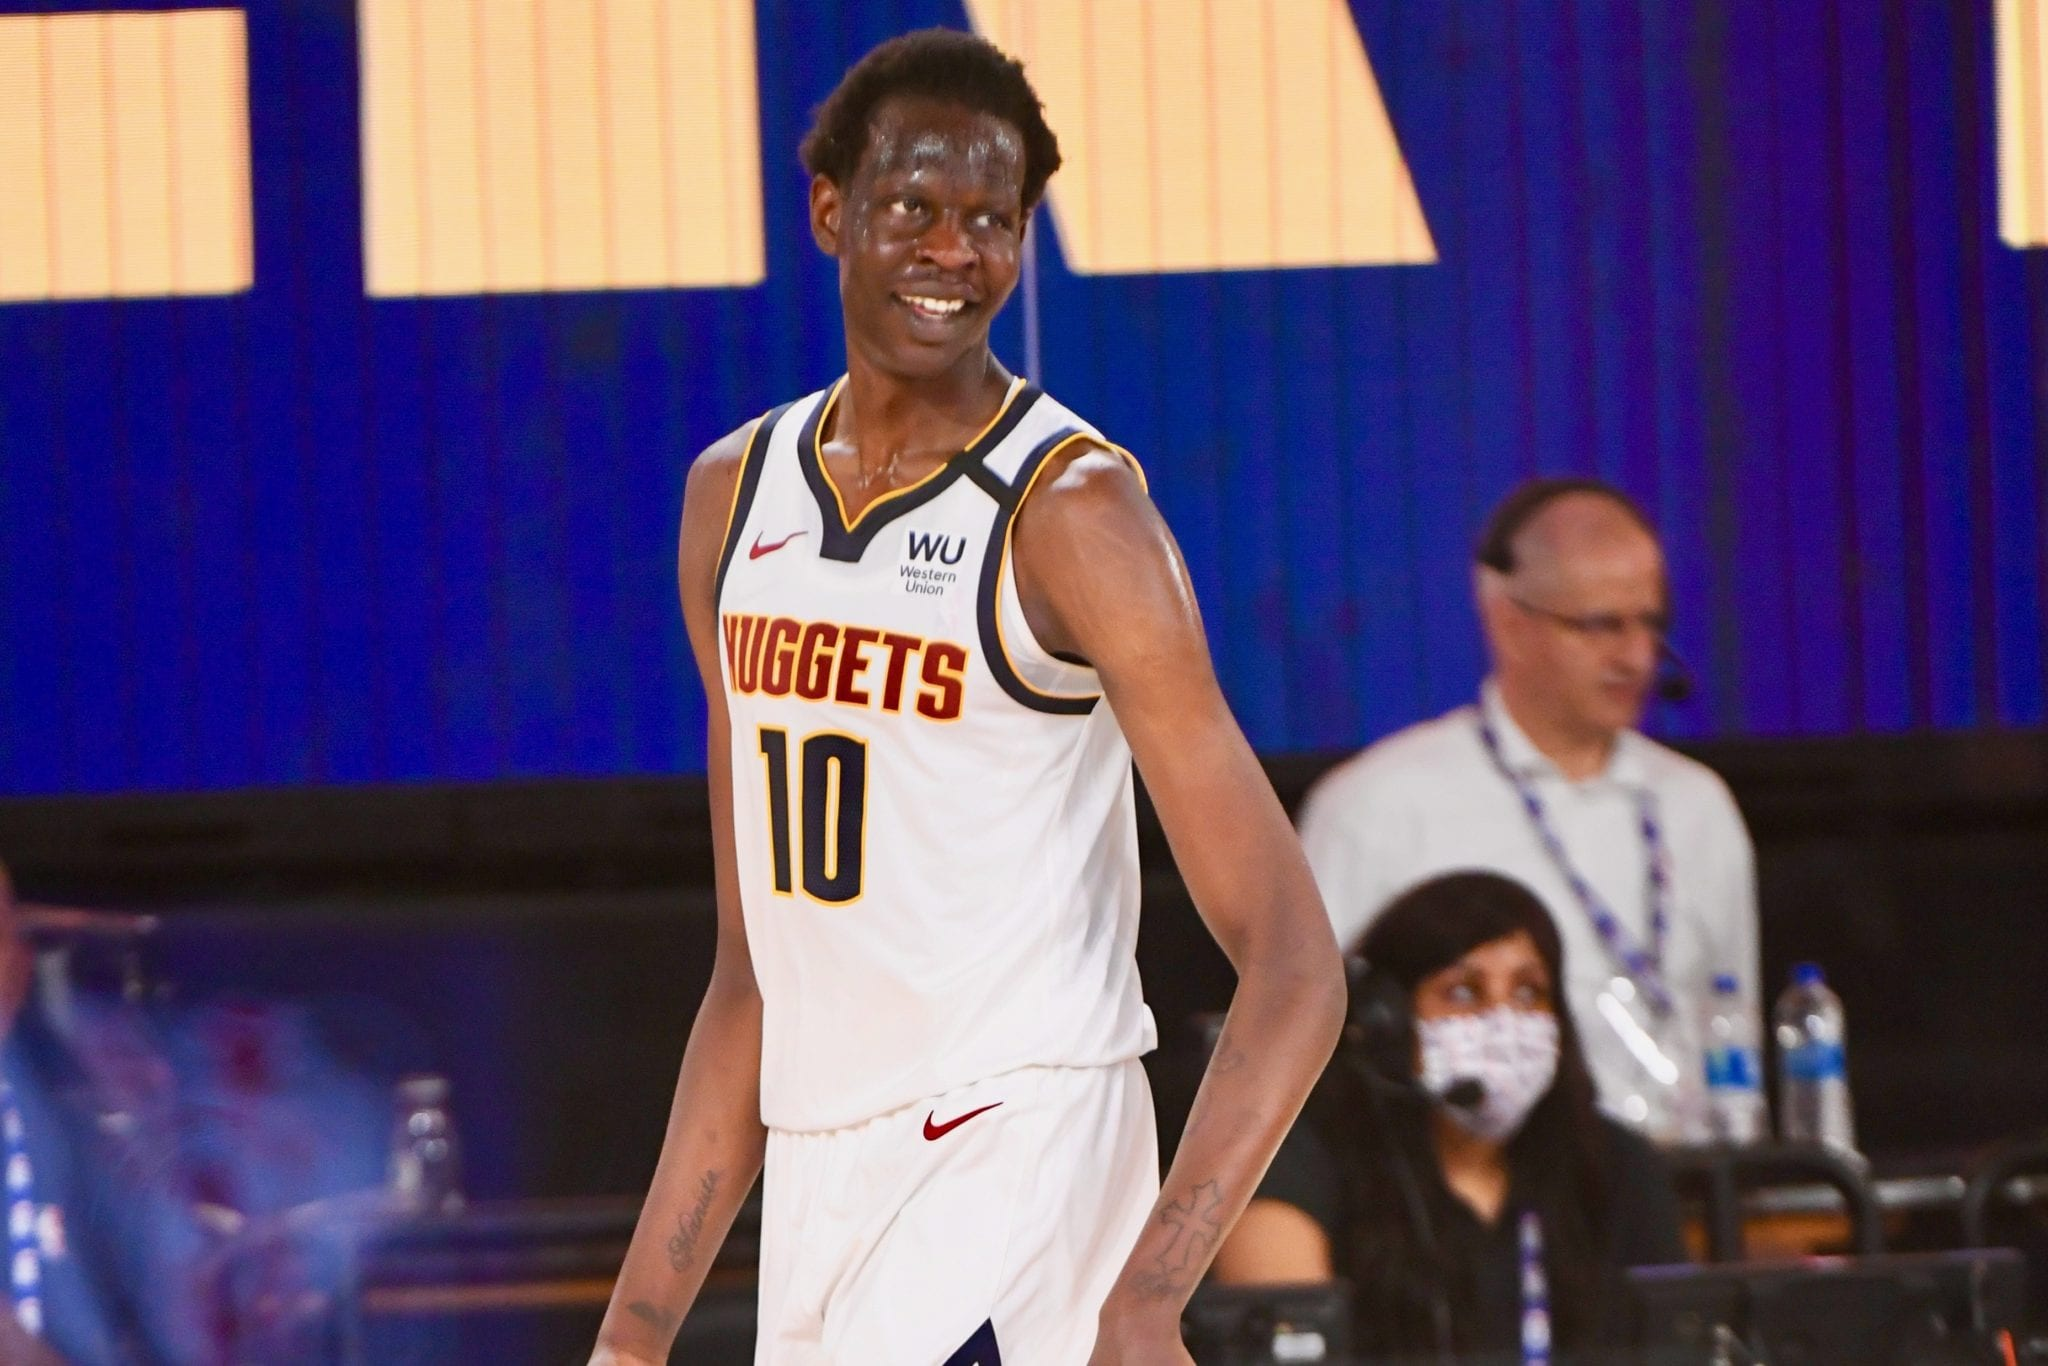 Nuggets' Bol Bol Racks Up a Double-Double In First Scrimmage